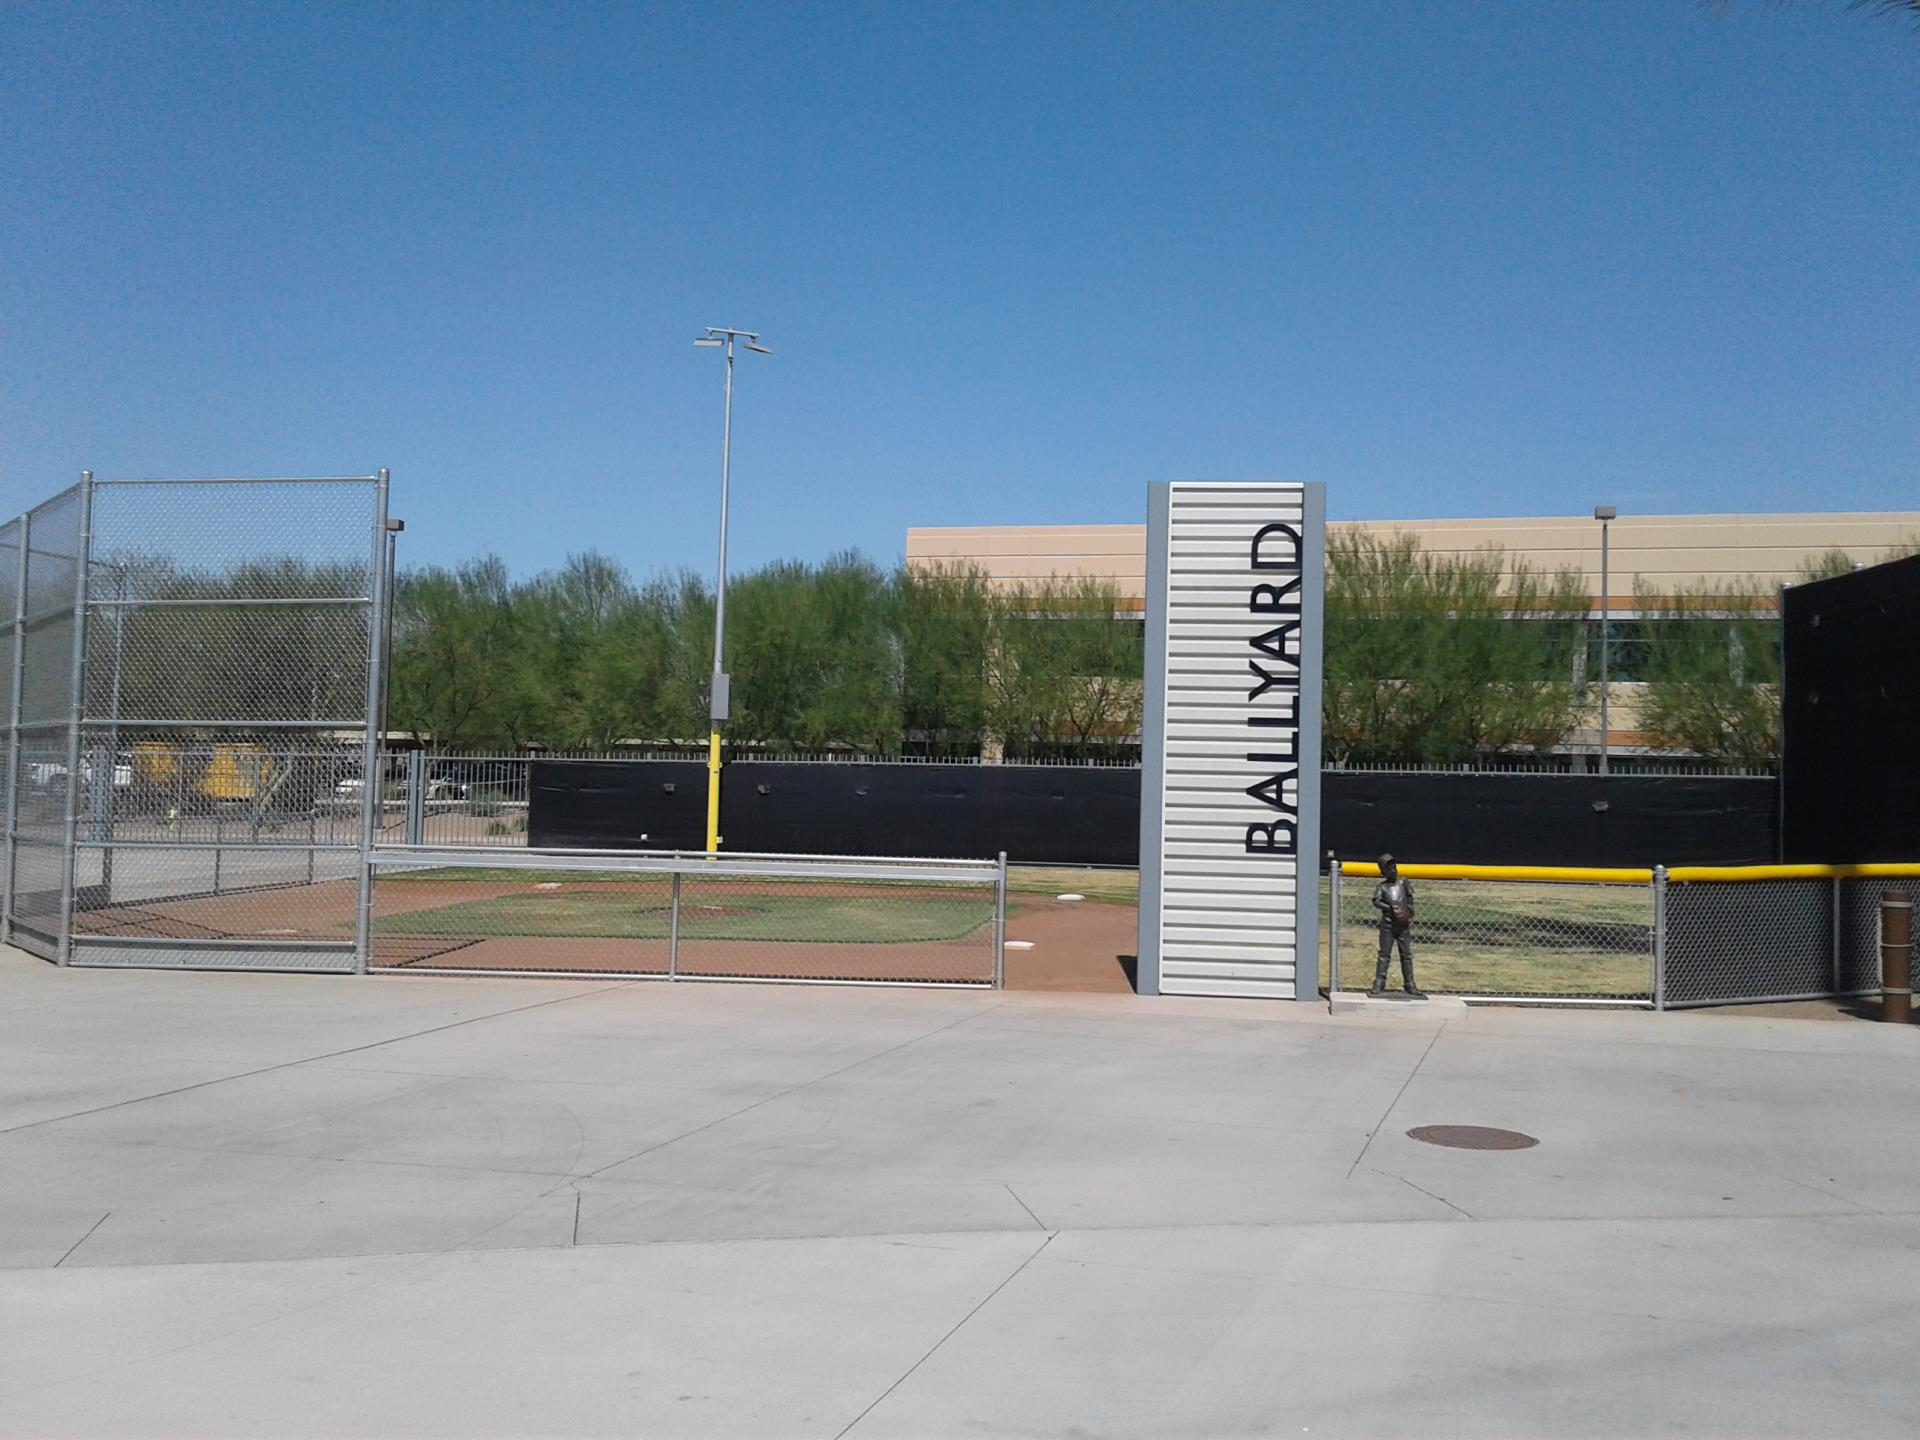 The Ballyard at Peoria Sports Complex